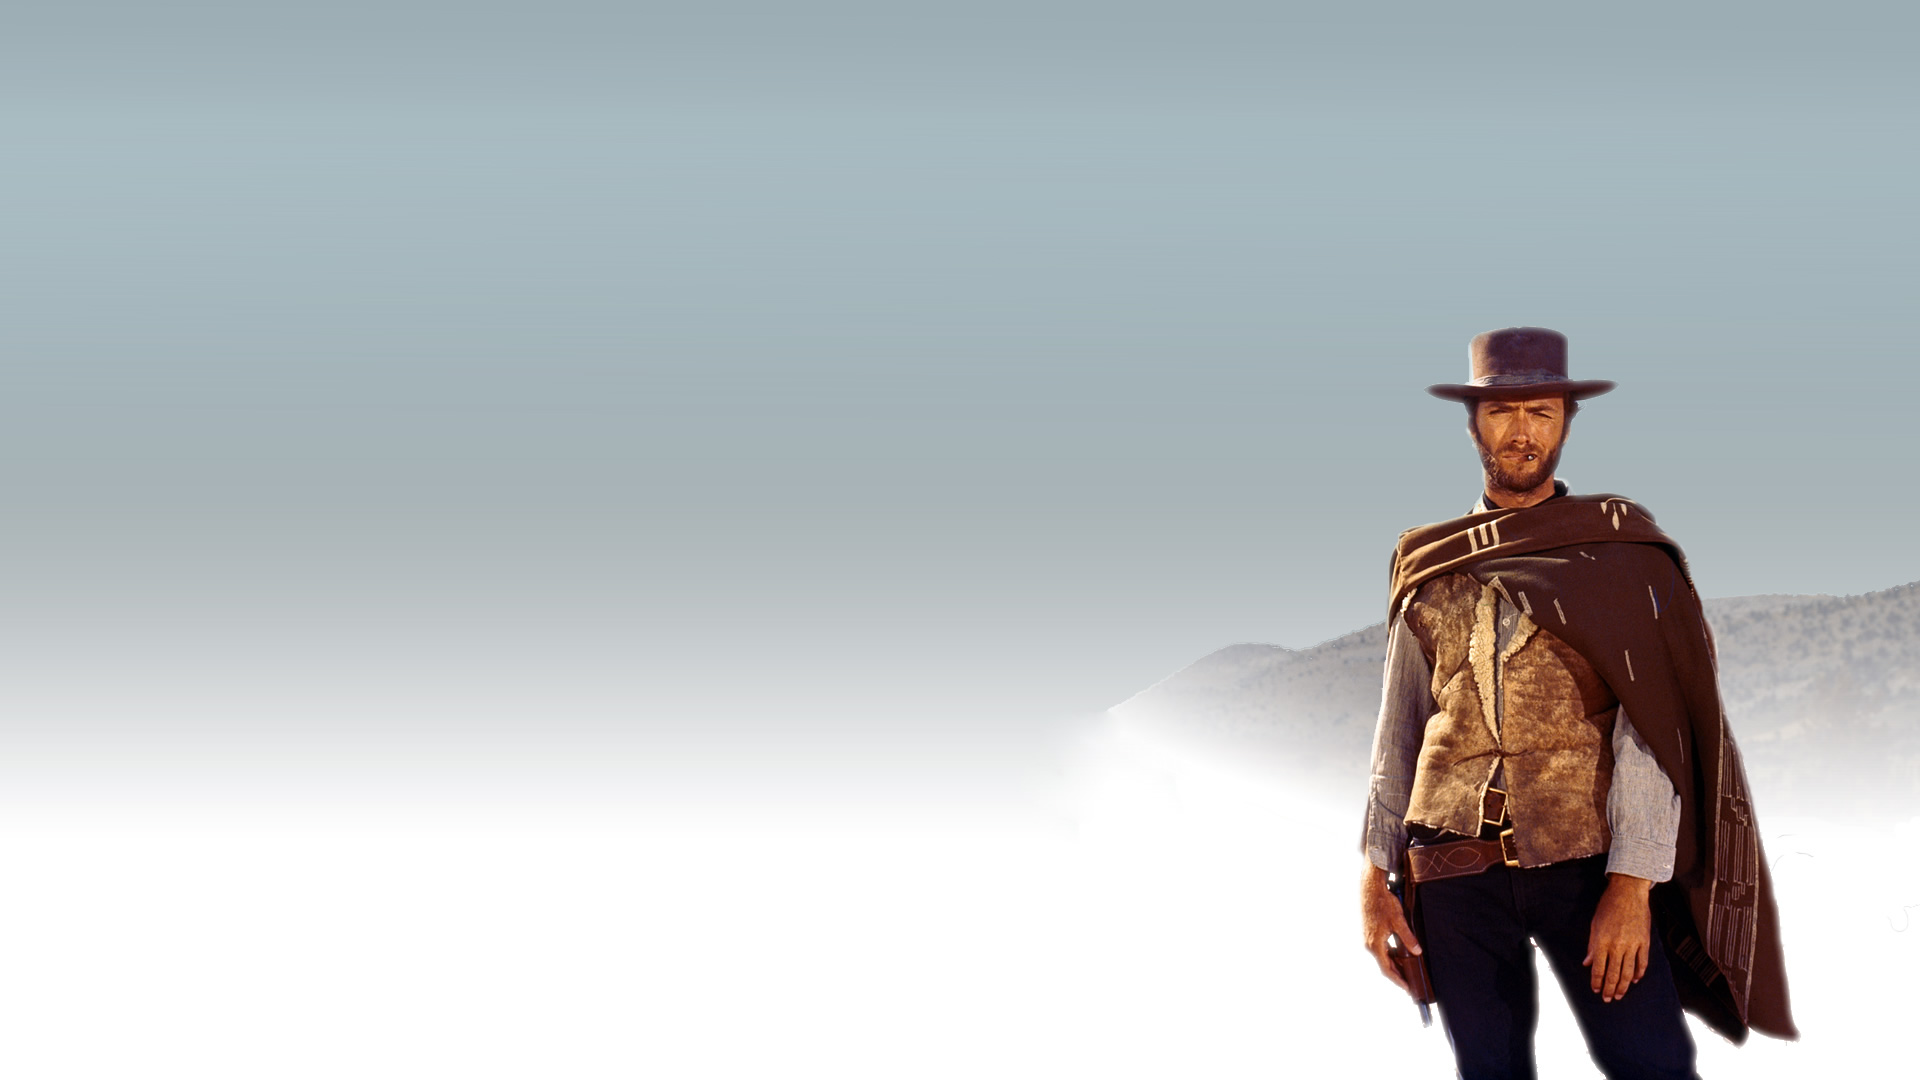 1920x1080 - Clint Eastwood Wallpapers 19